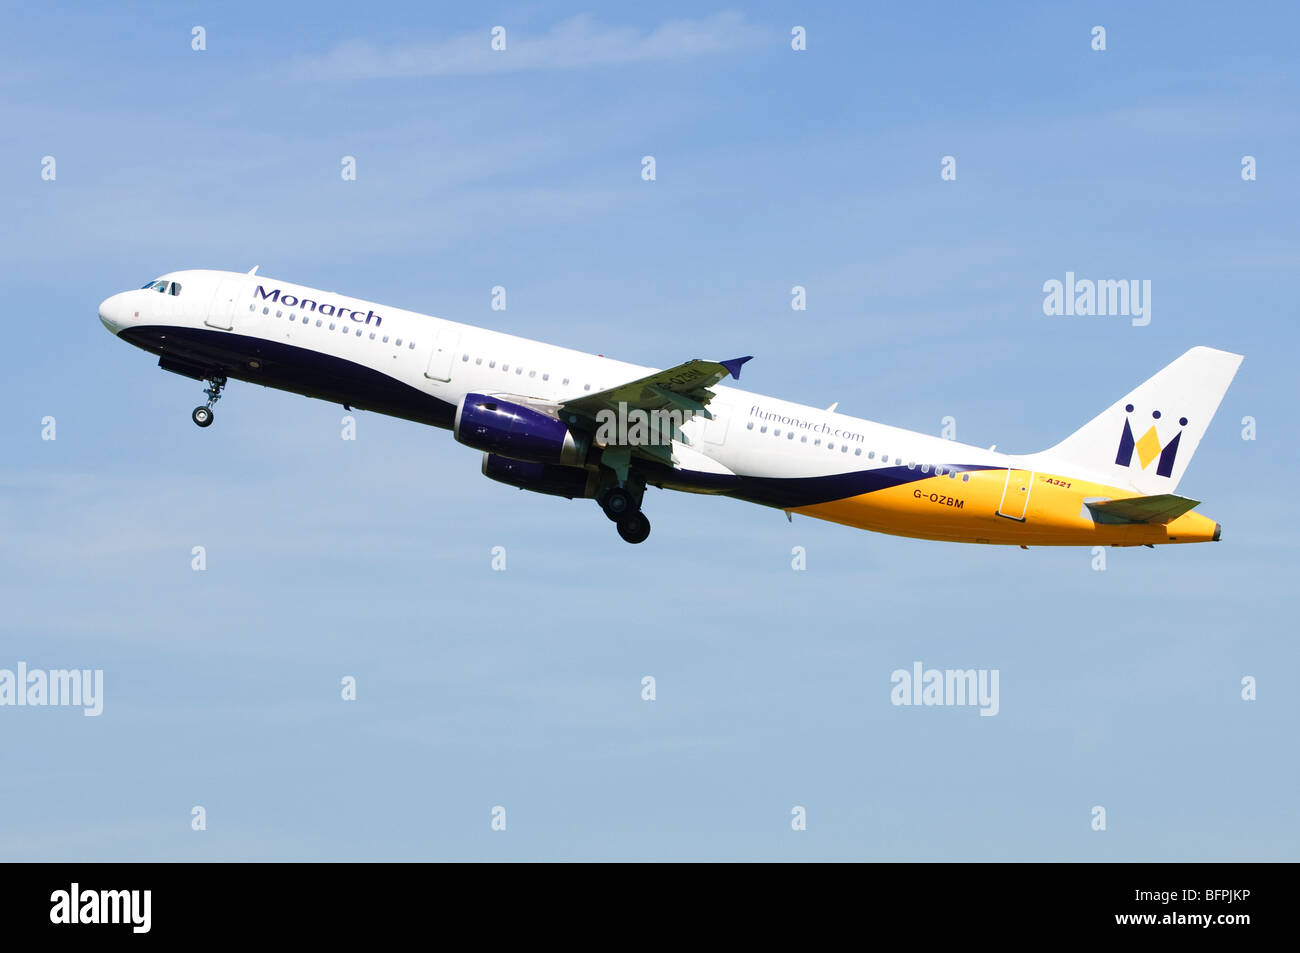 Airbus A321 operated by Monarch Airlines climbing out after take off from Birmingham Airport, UK. Stock Photo